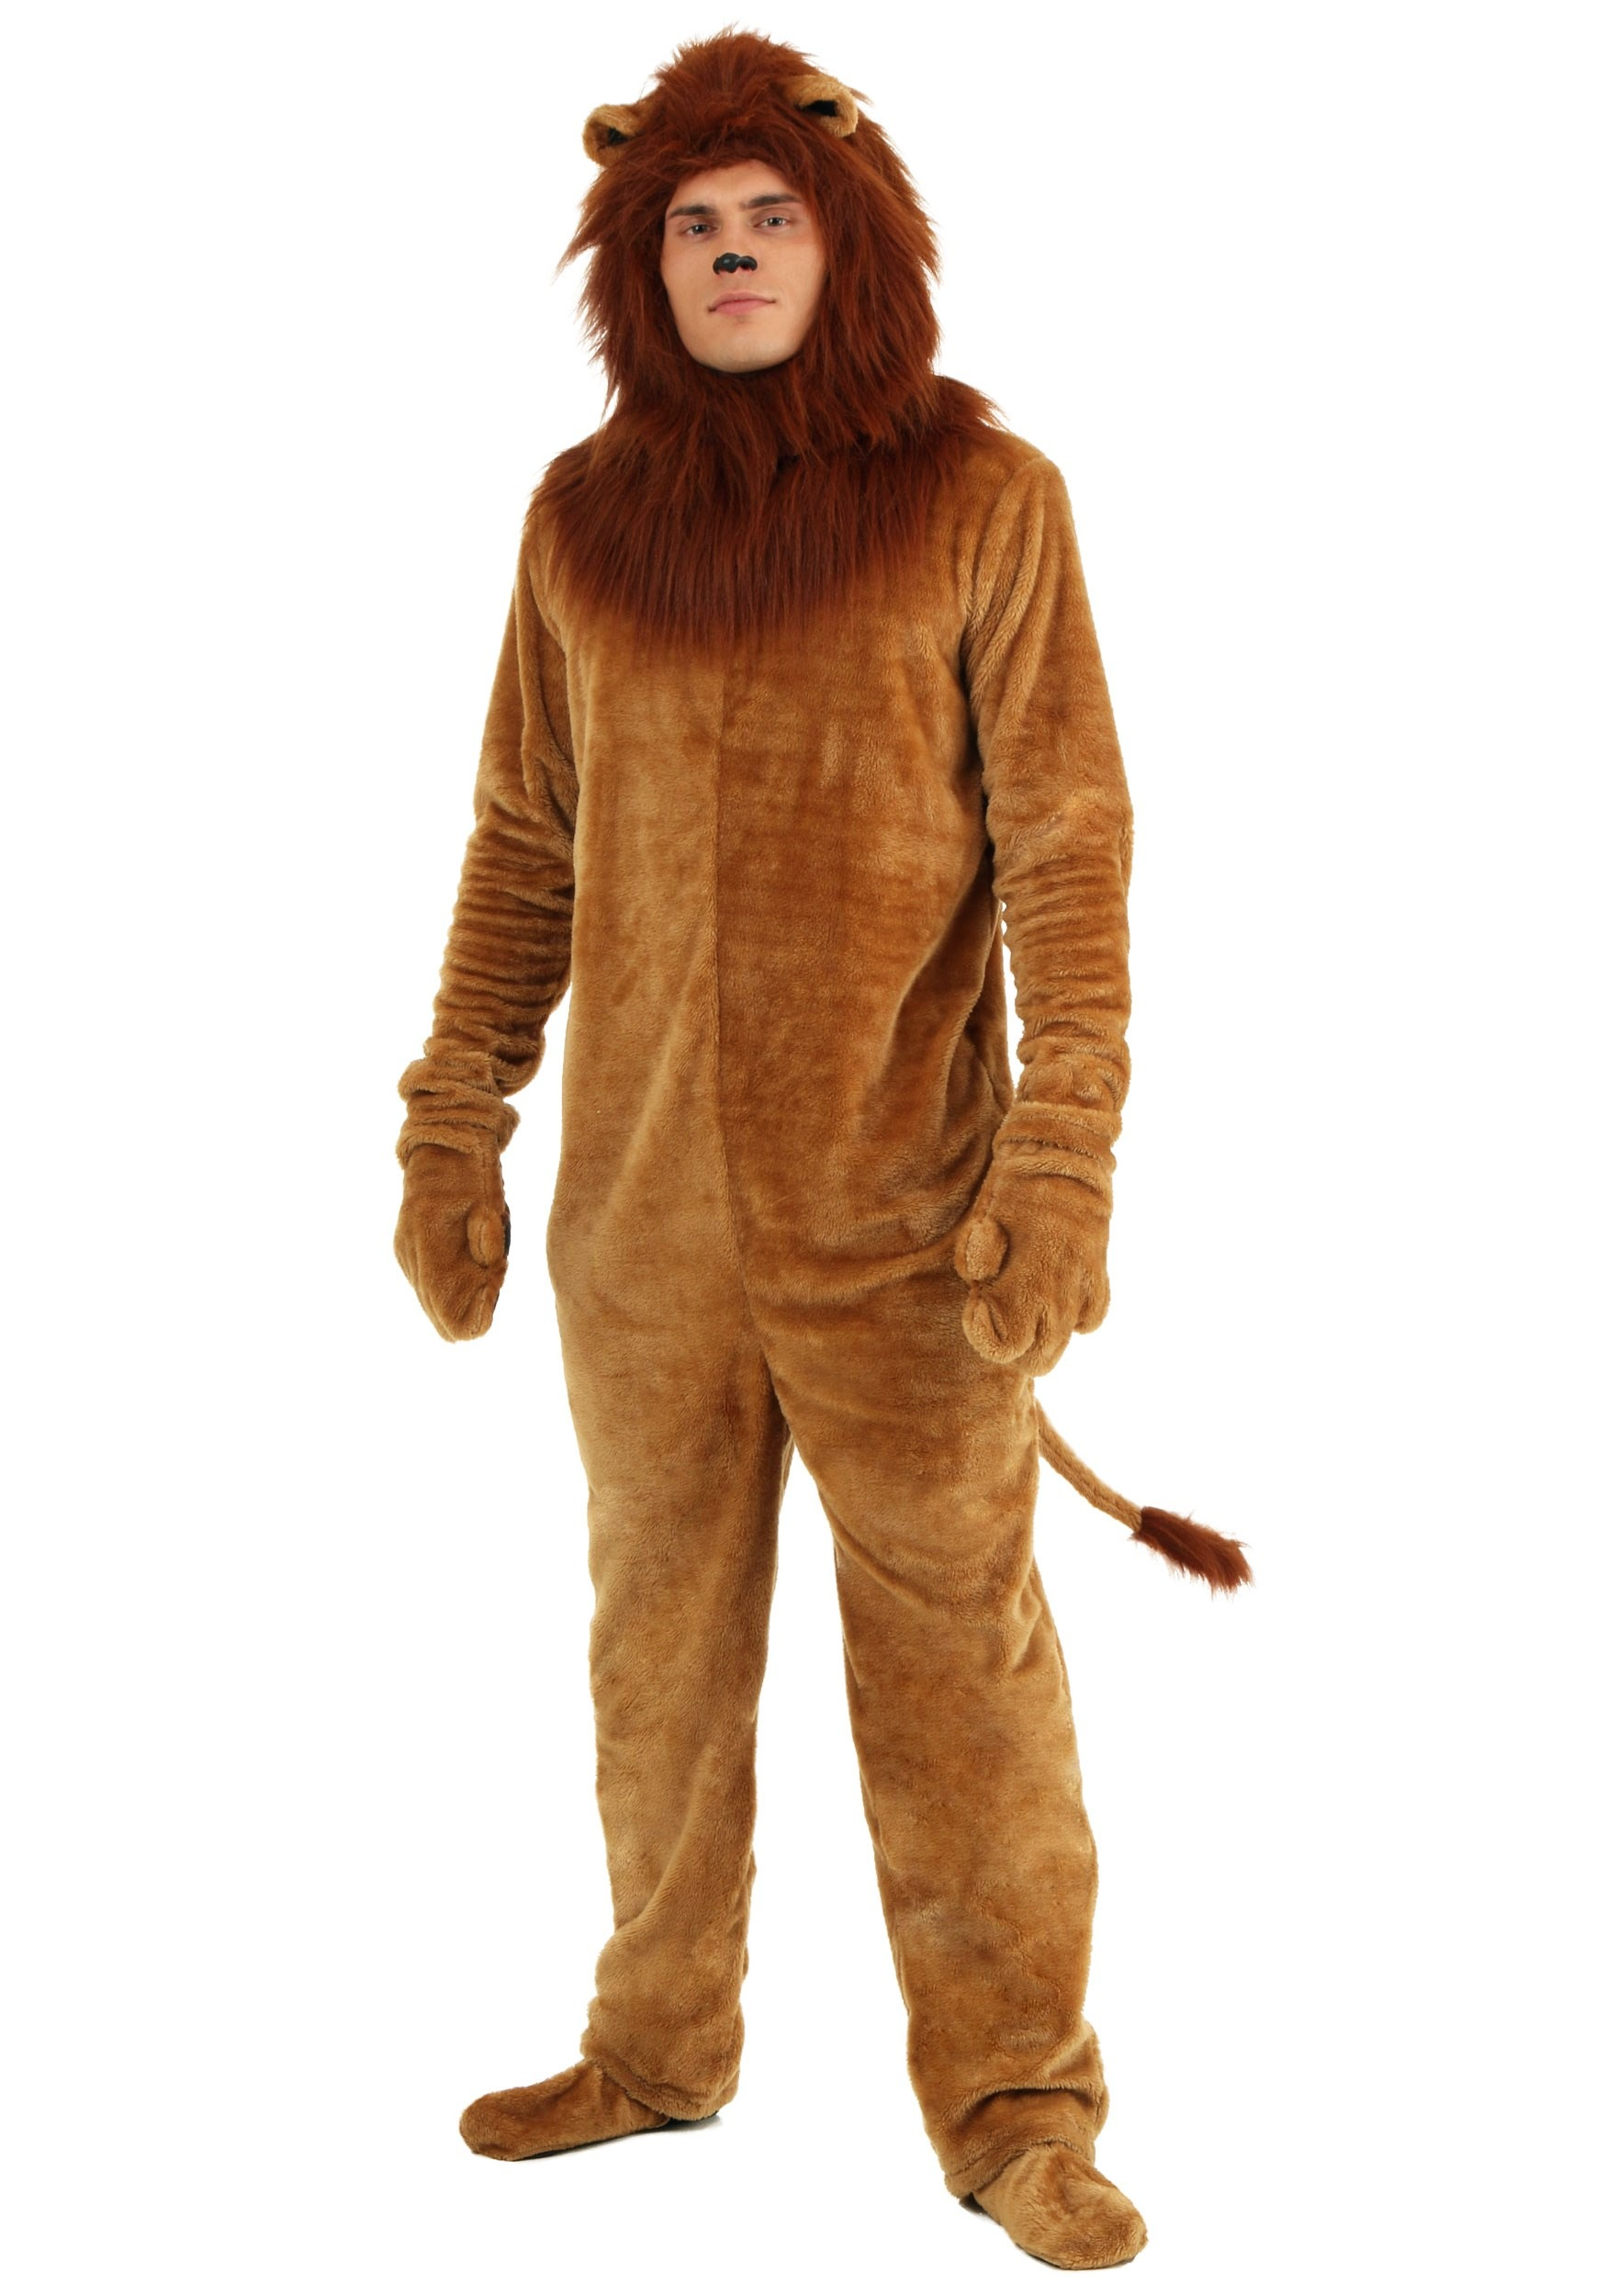 Animal costumes for adults kids halloweencostumes adult deluxe lion costume solutioingenieria Image collections